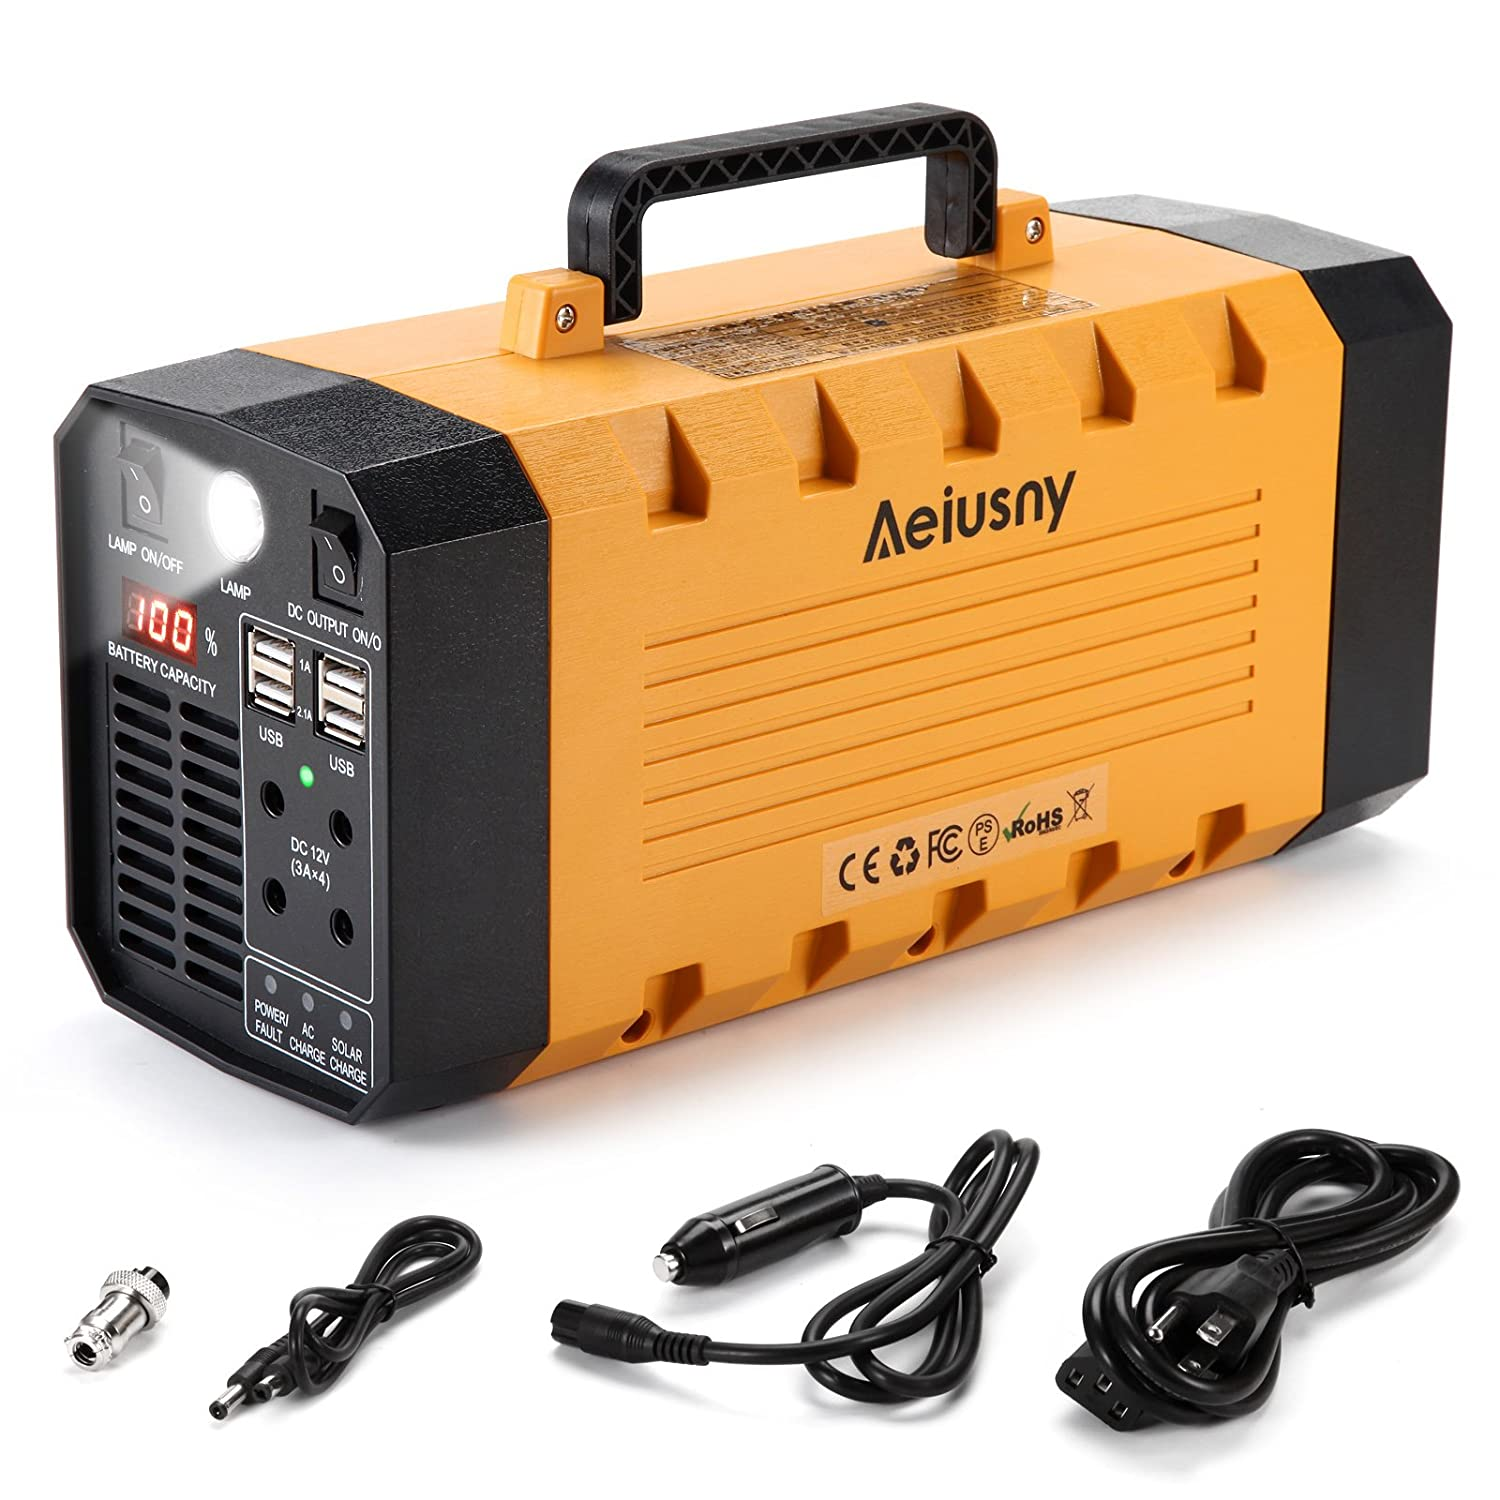 Aeiusny Generator Portable Power Ups 288wh 500w For Home Battery Backup Circuit Page 1 Camping Cpap Emergency Charged Solar Panel Wall Outlet Car